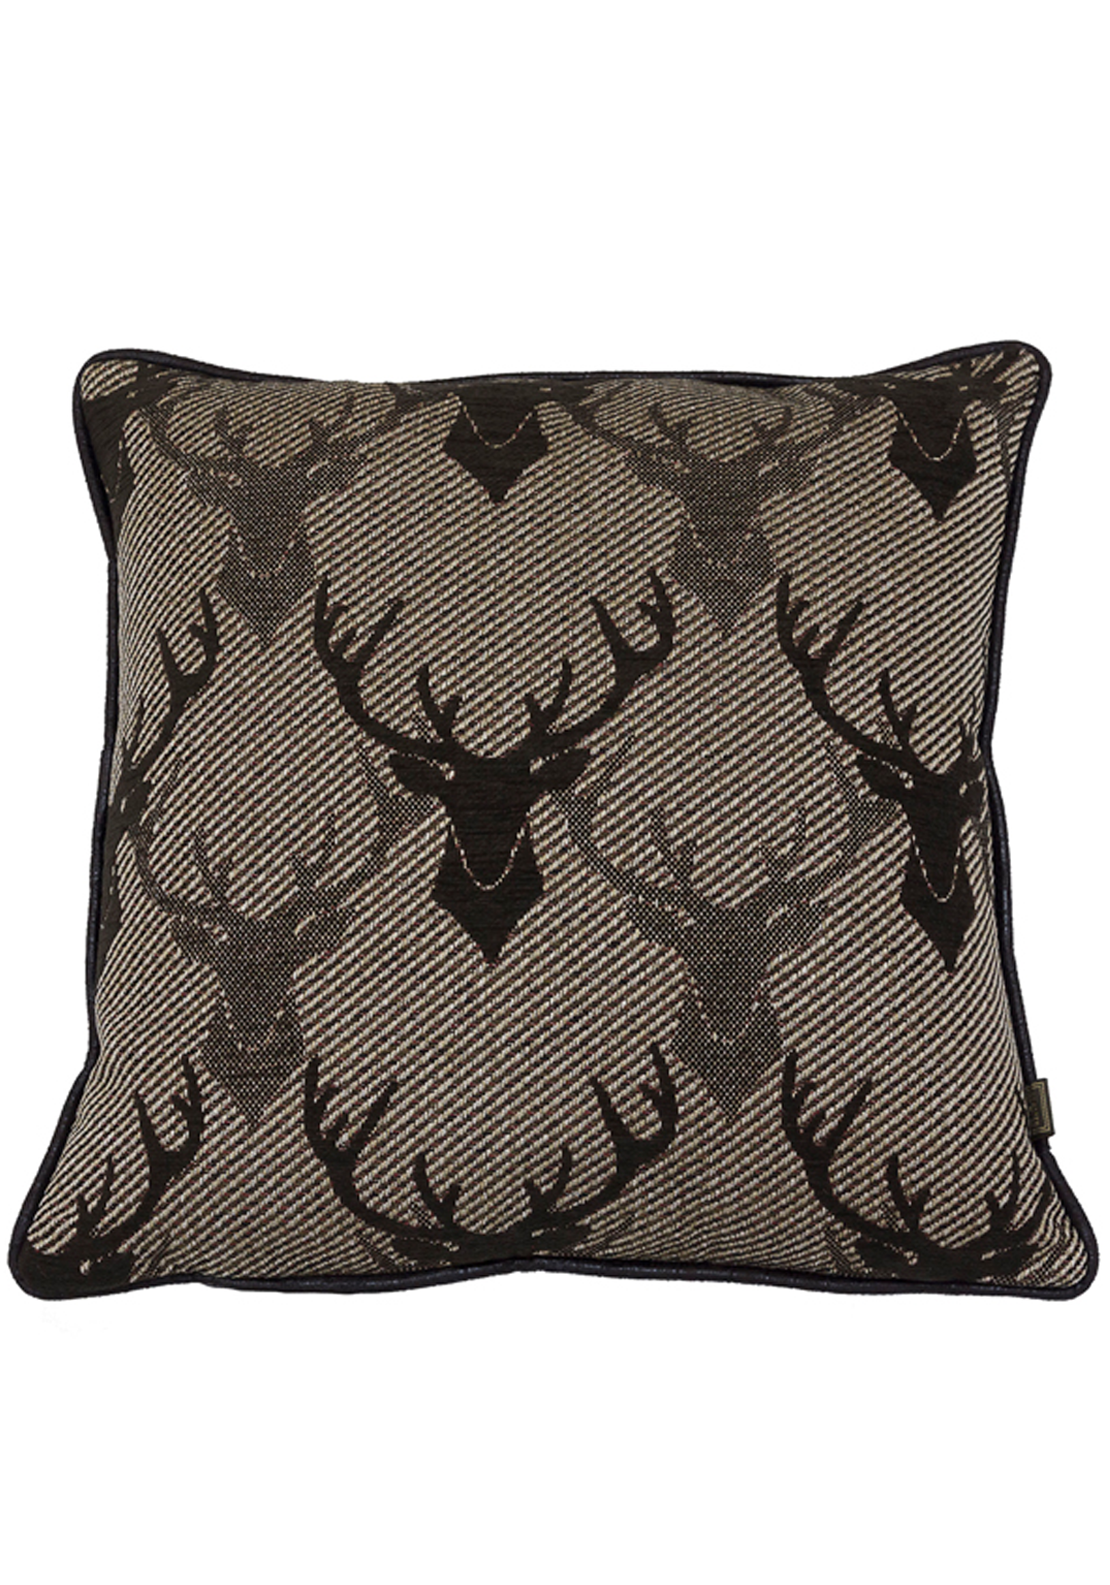 Scatterbox Stag Allover Woven Jacquard Feather Filled Cushion, 45 x 45cm Brown